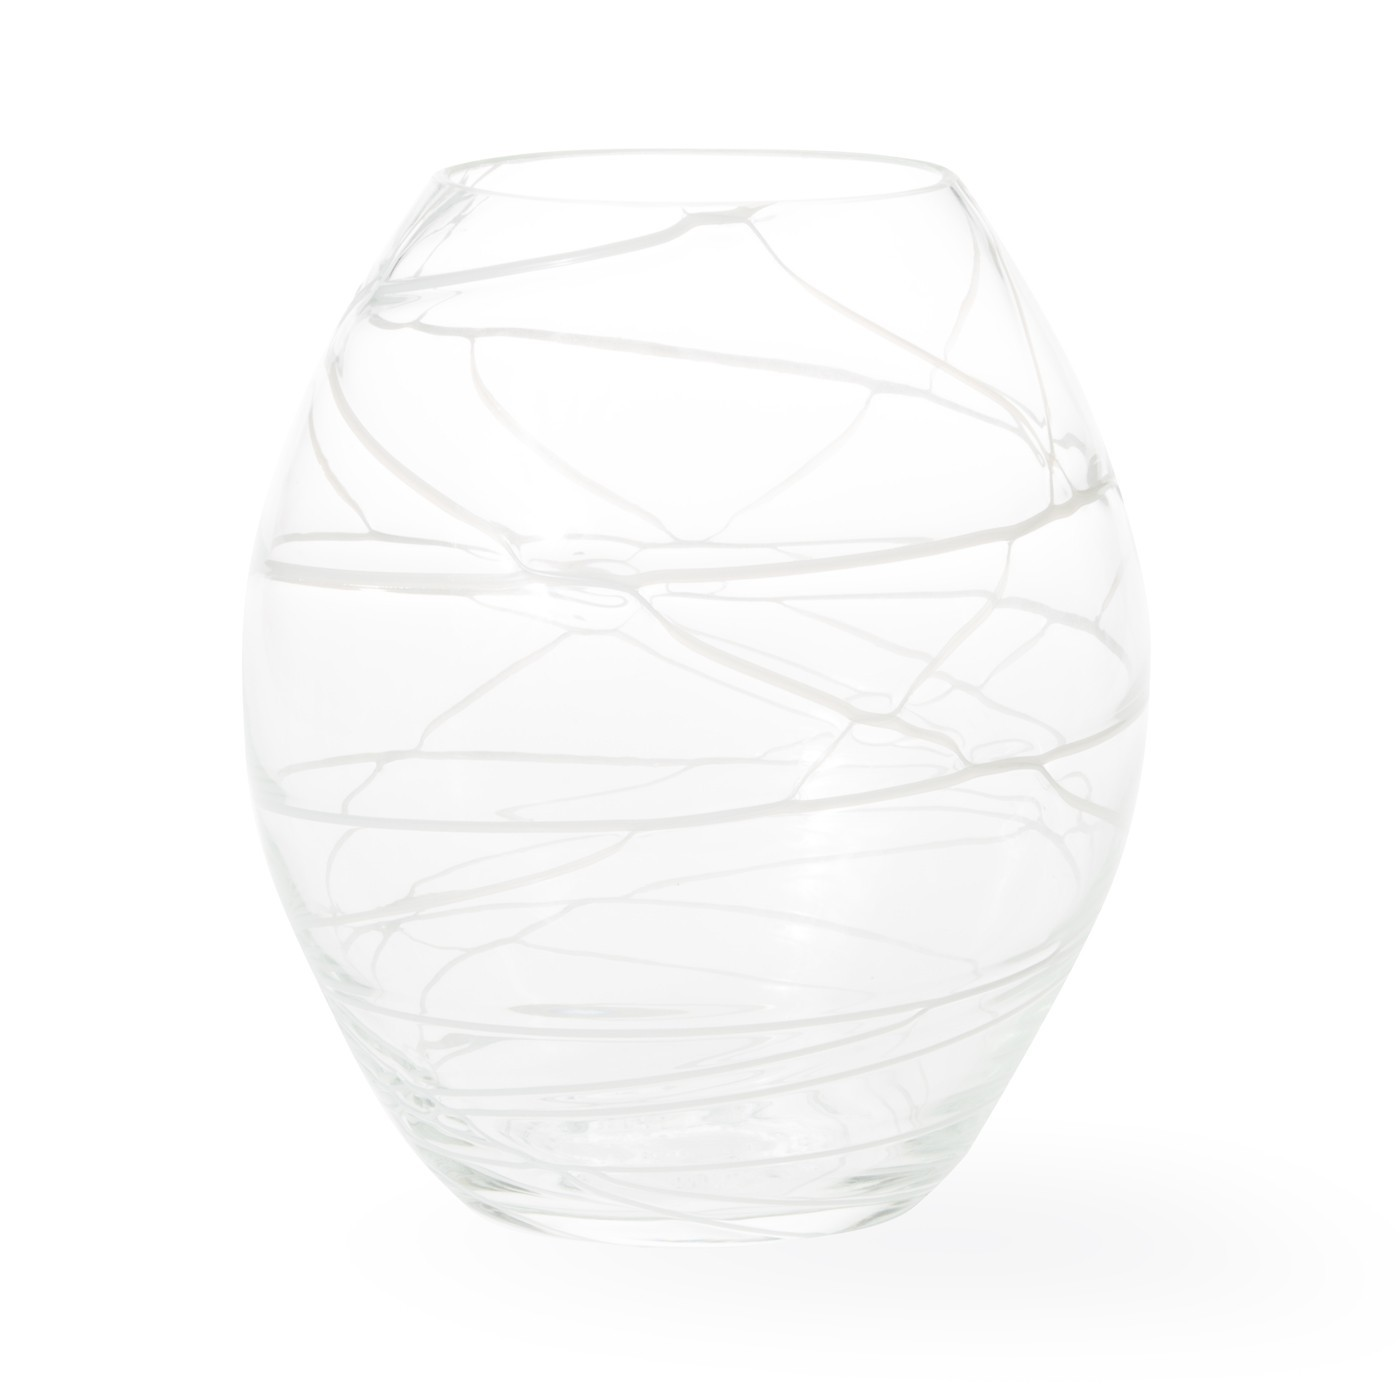 Vietri Vines Small Vase 59 You Save 53 00